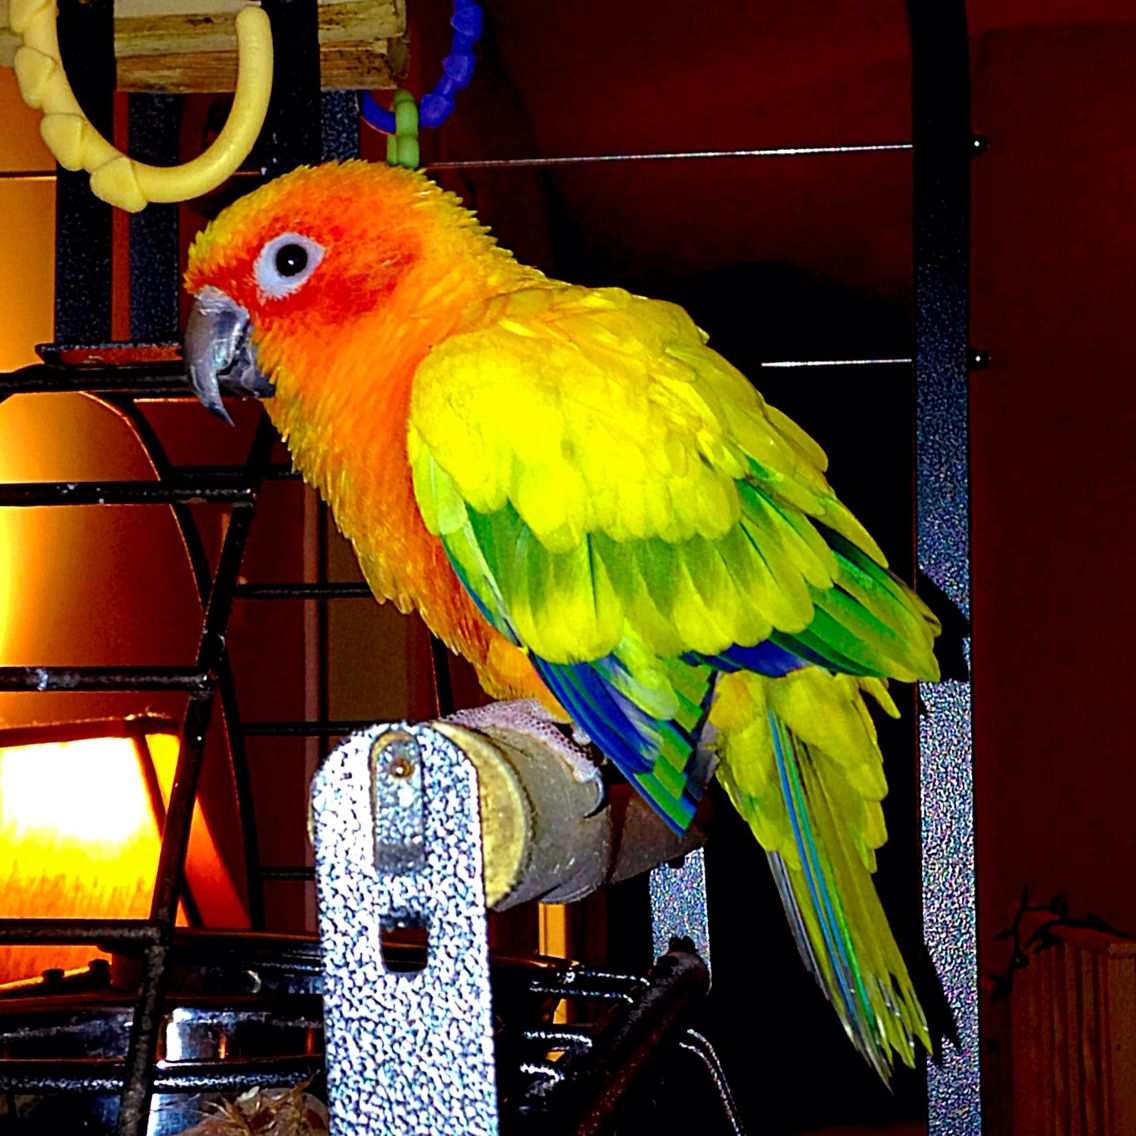 Meet Bowser, my new sun conure!